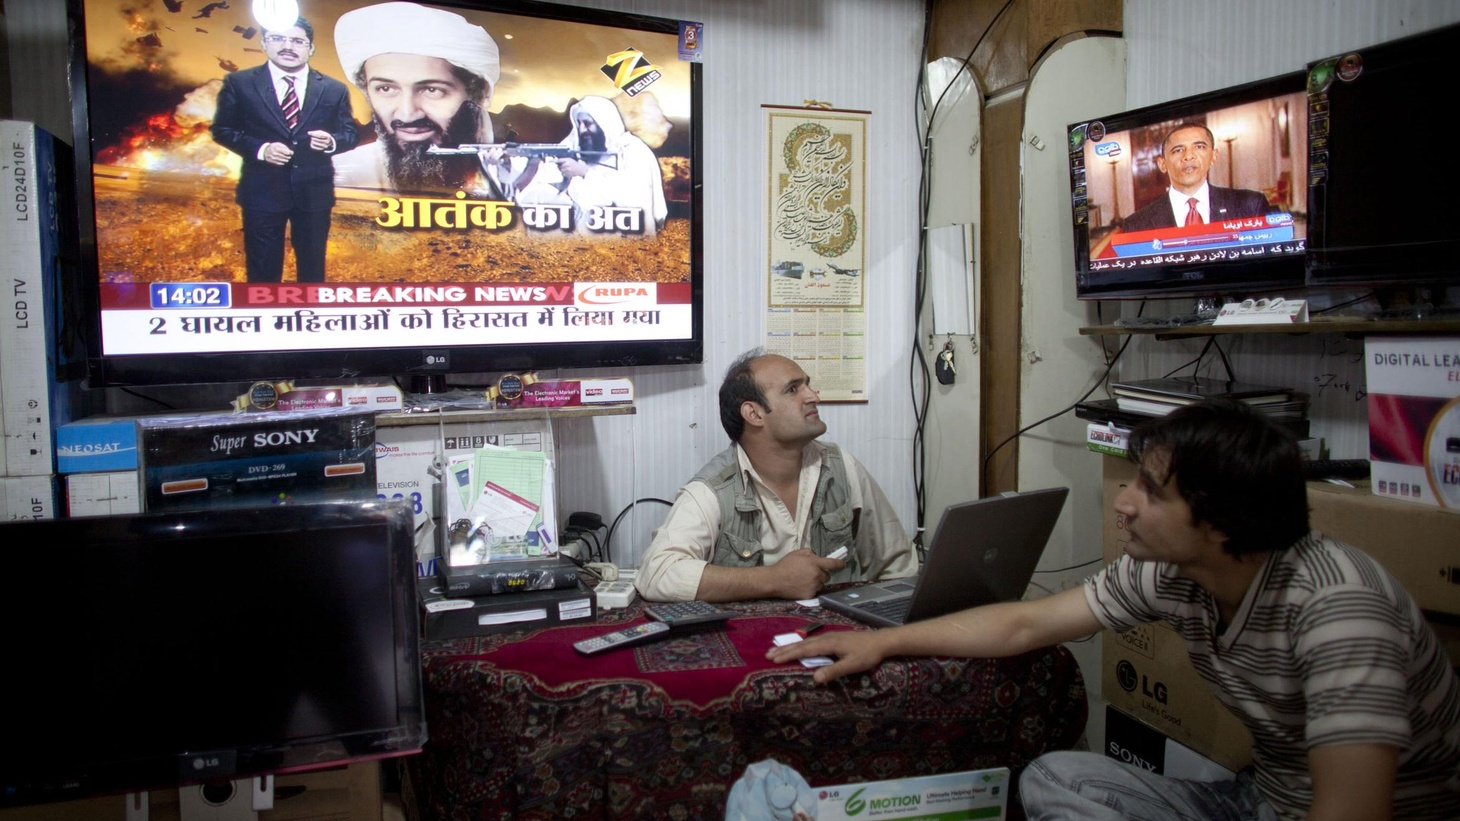 Osama bin Laden was discovered in a fortified compound a few miles from Pakistan's capital city. DNA analysis positively identified him as man killed by US Special Forces.